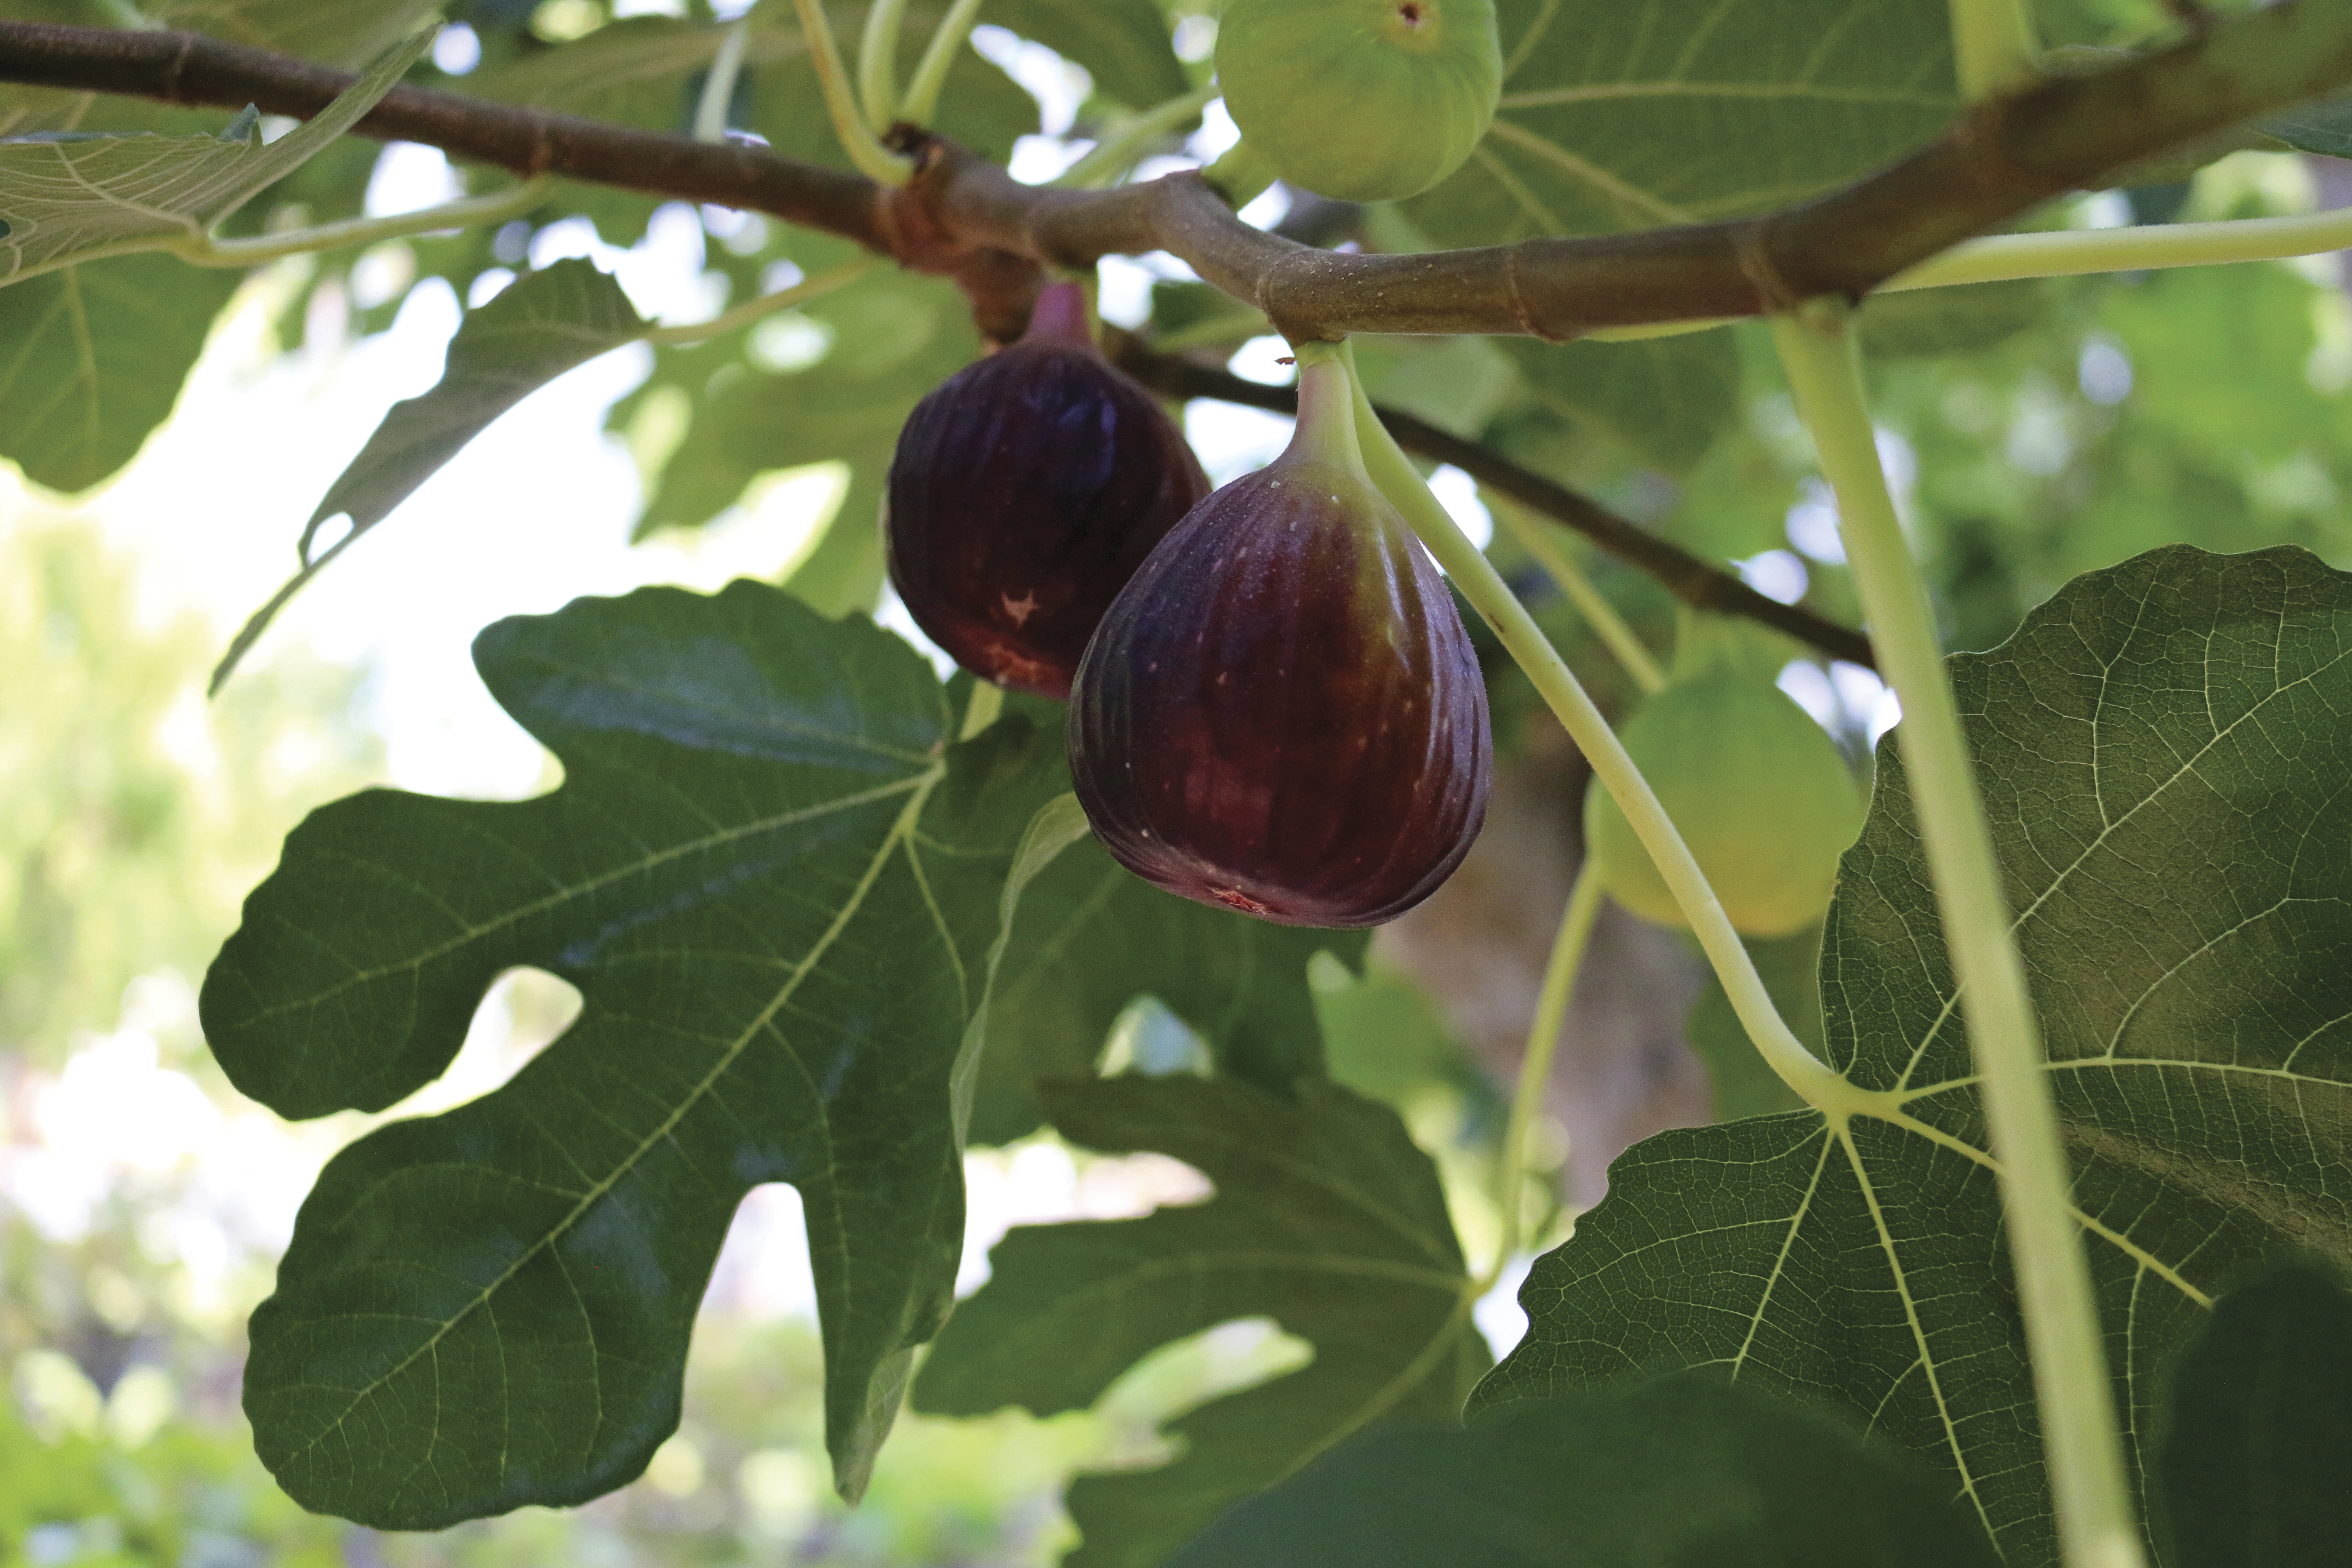 Two figs growing on a branch.